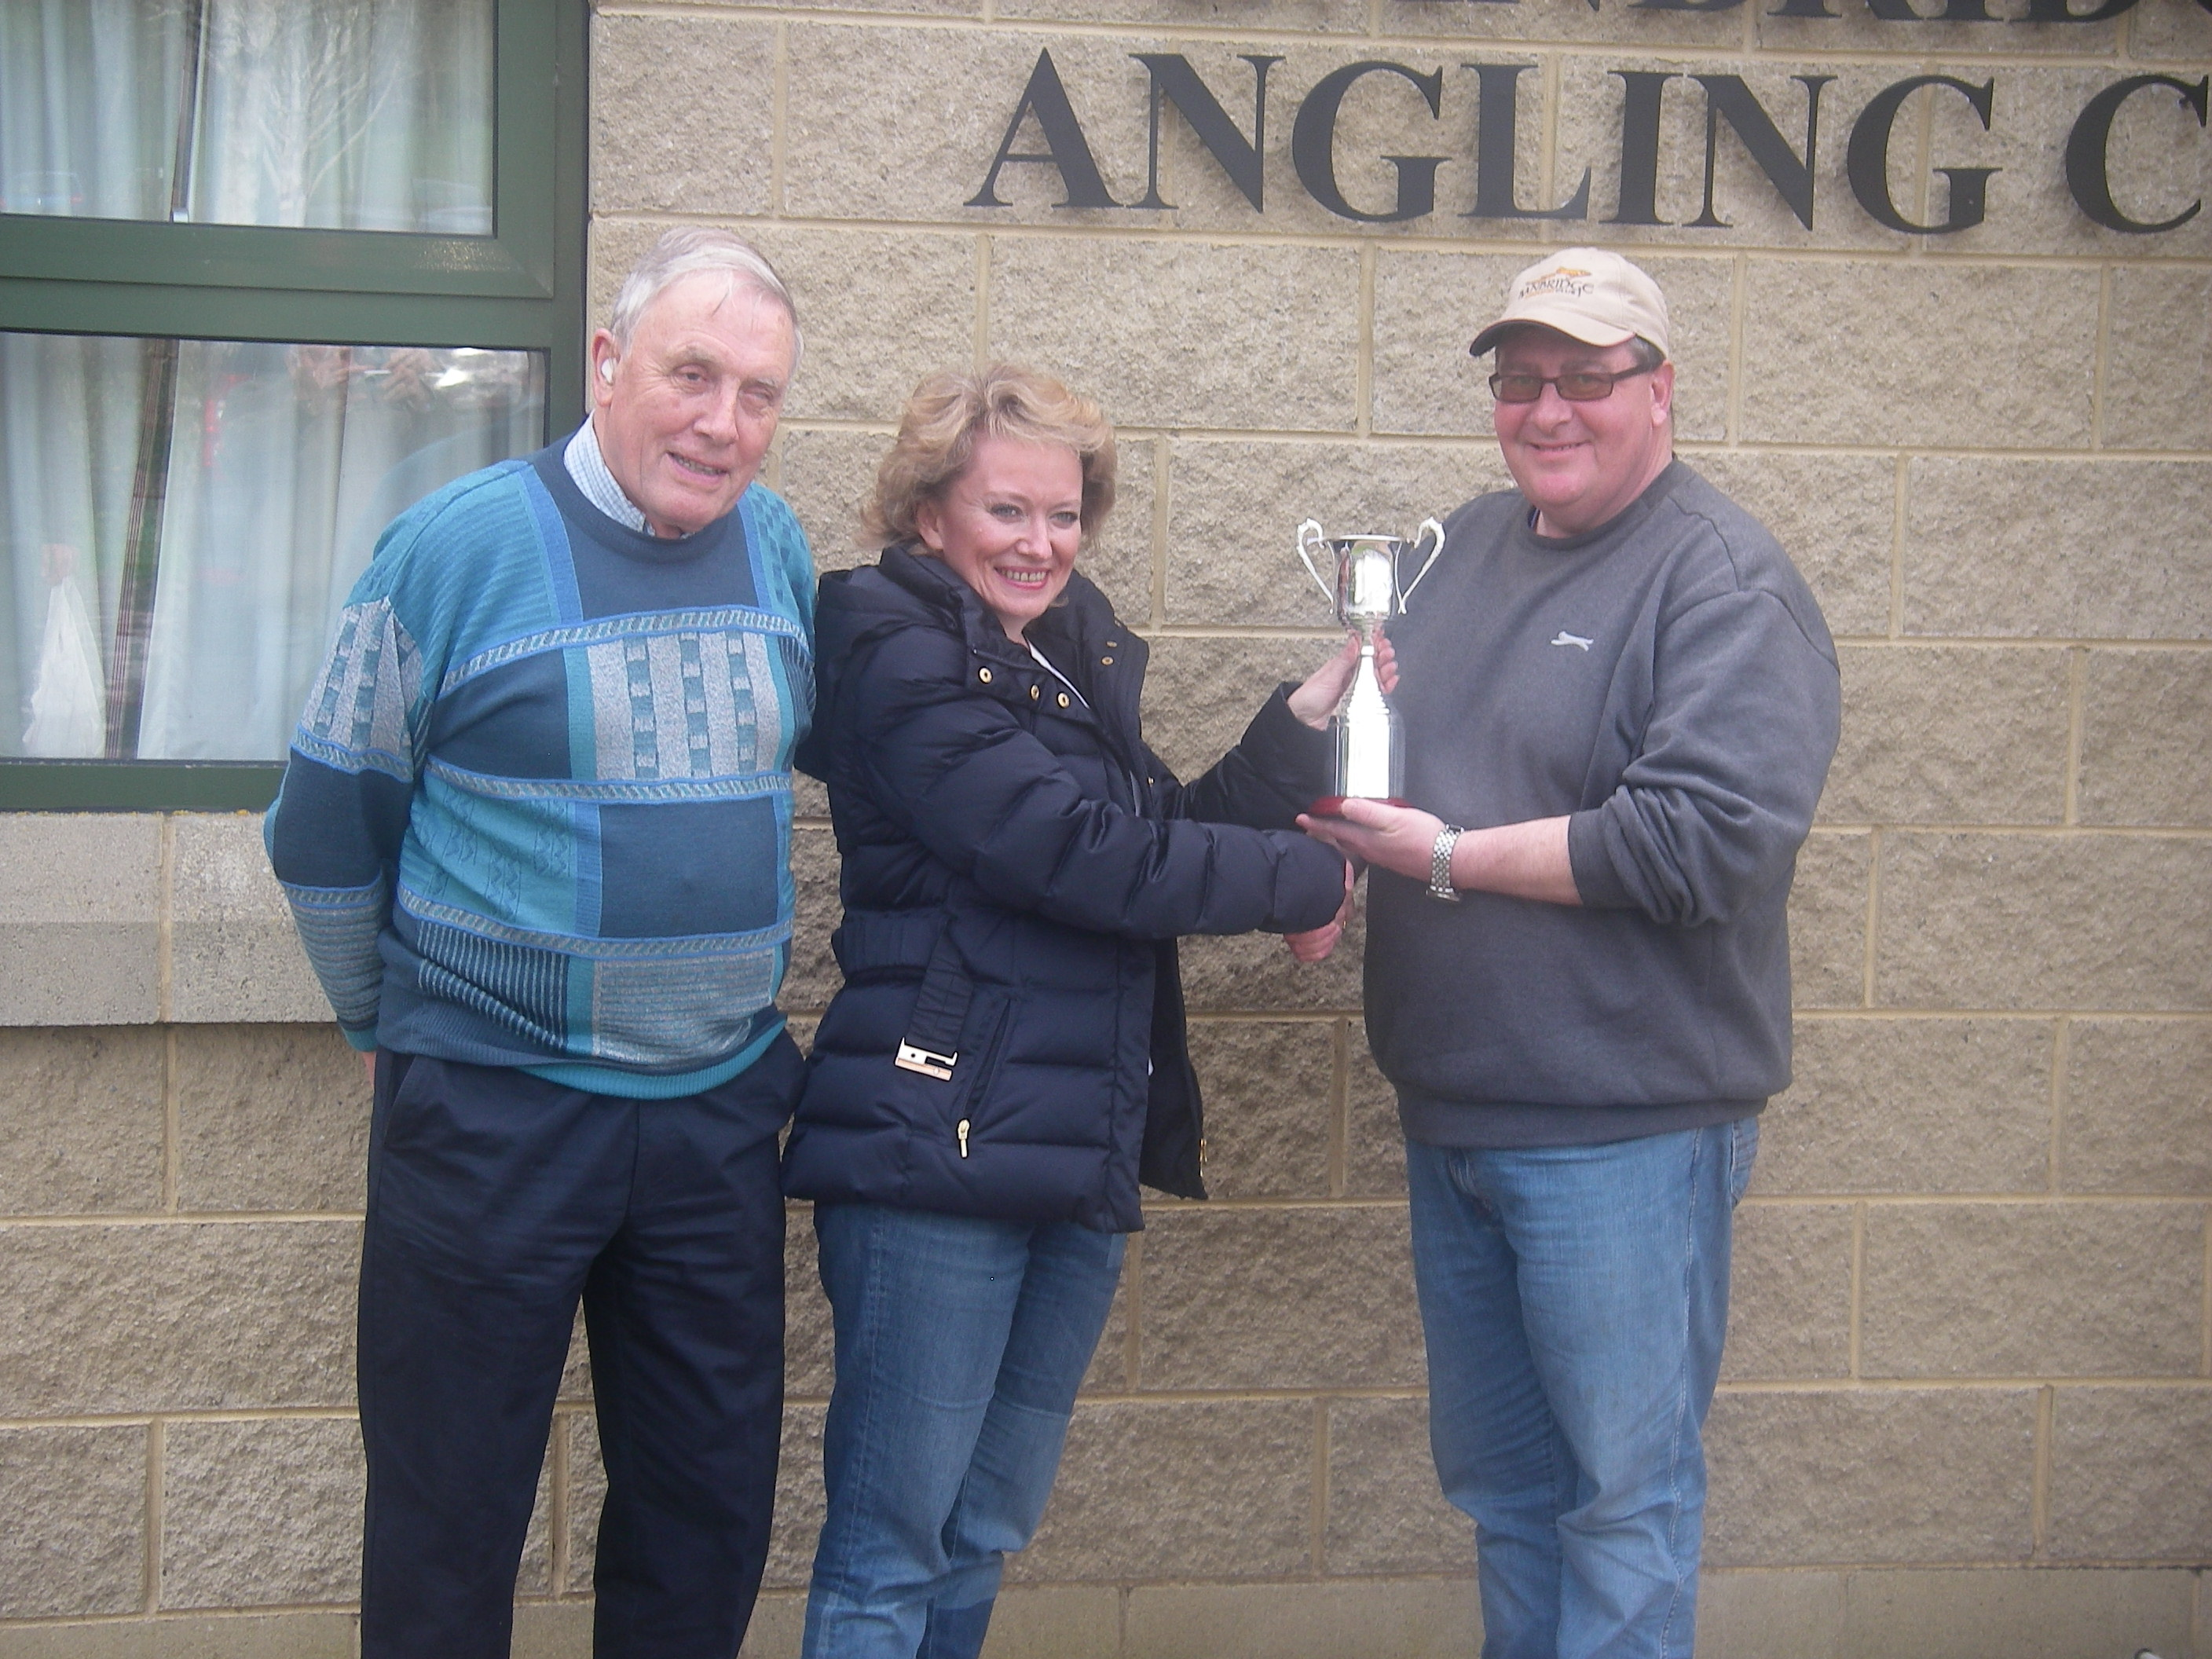 BAC Linda McCandless Cup River Bann 1 April 2017 - Dr Jacqueline McCandless, accompanied by Joe McCandless her father and the Club's Joint President, presenting the Linda McCandless Cup to Martin Dynes